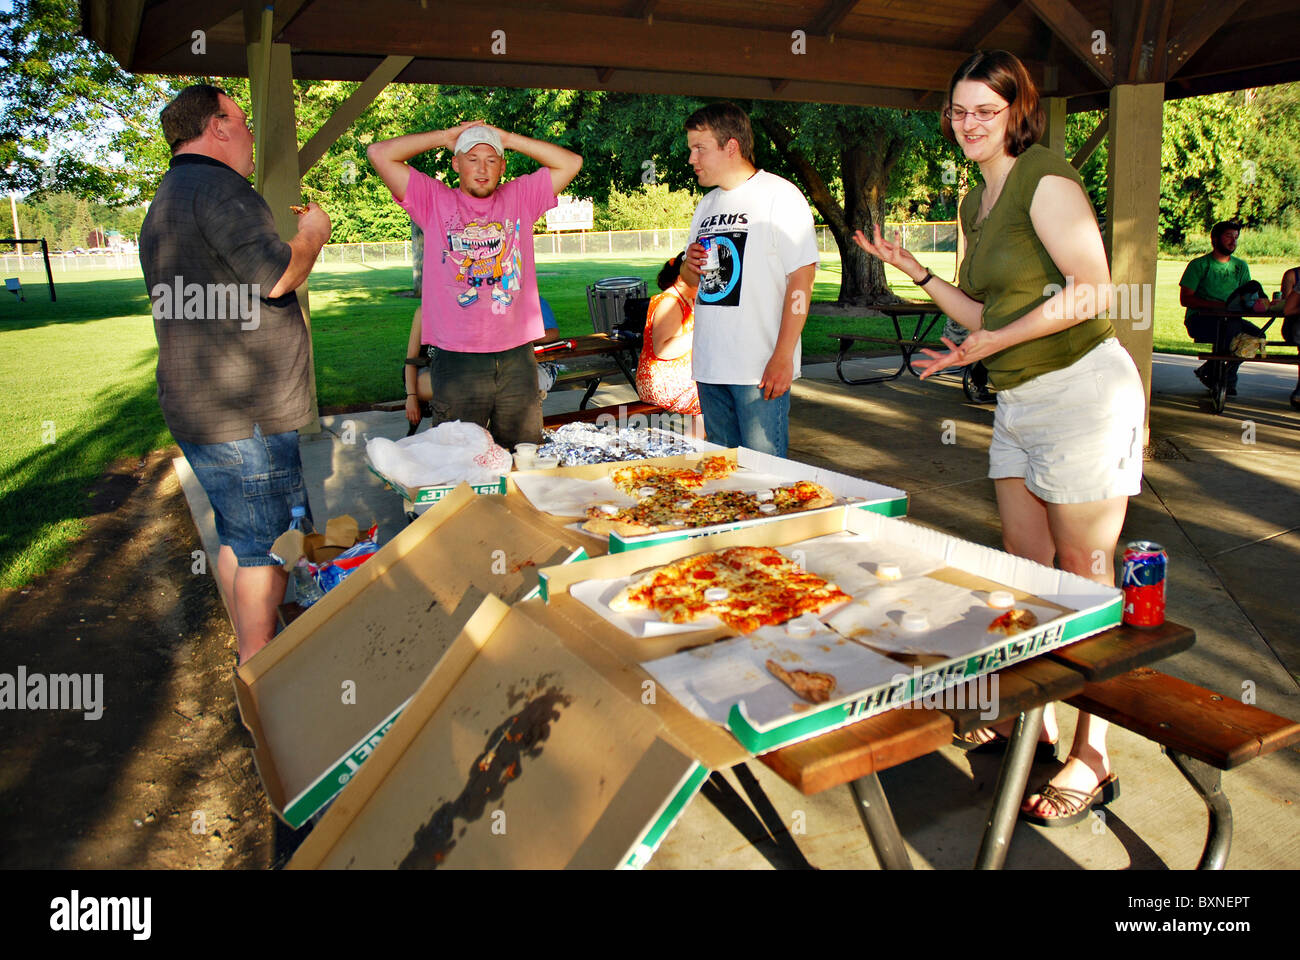 Adults having a pizza party at a park Stock Photo